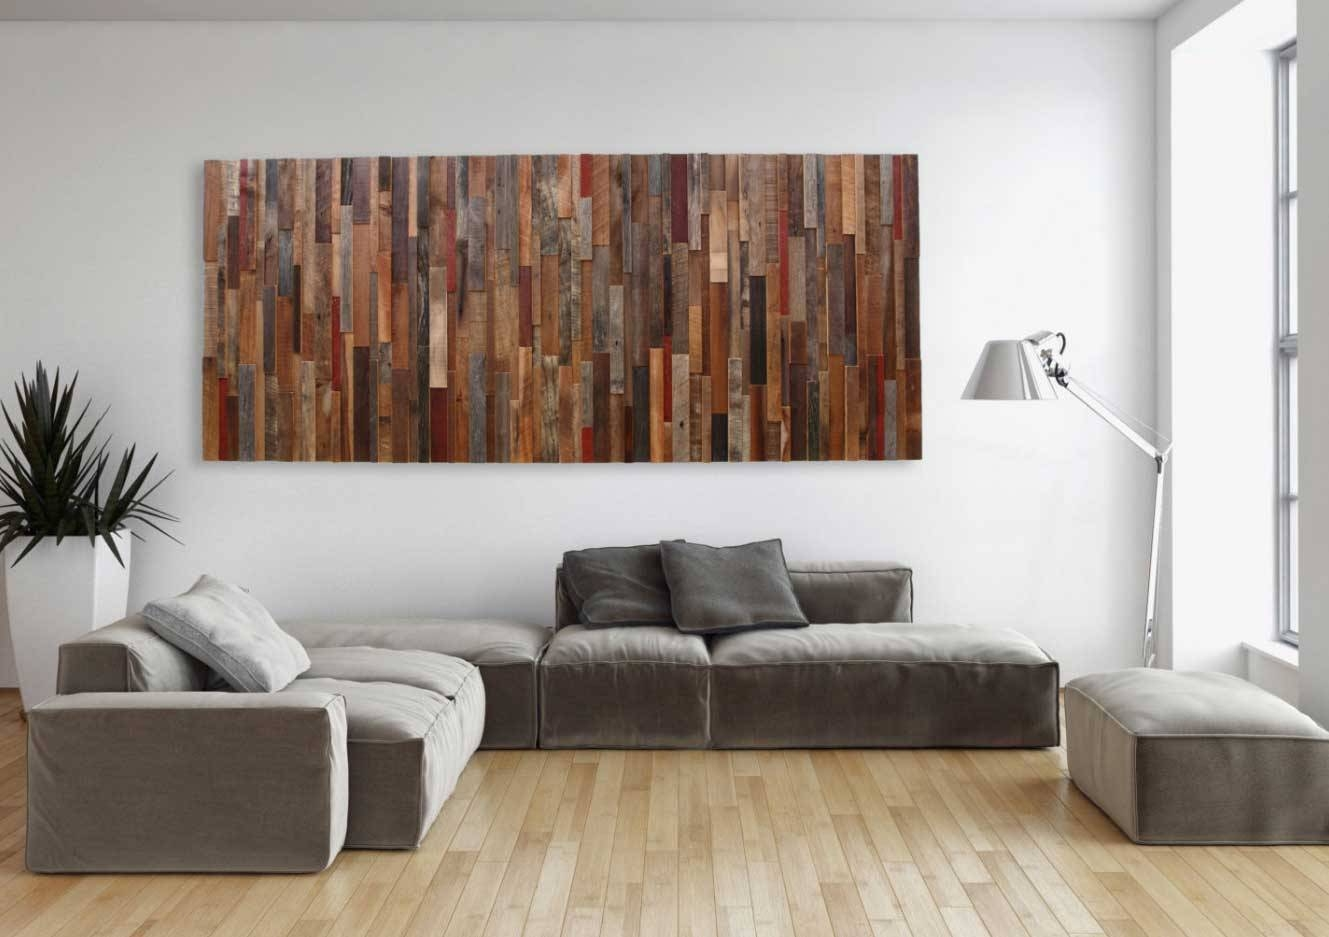 Oversized Wall Art Contemporary Sculpture Ideas | Home Interior Within Recent Oversized Wall Art (Gallery 23 of 25)